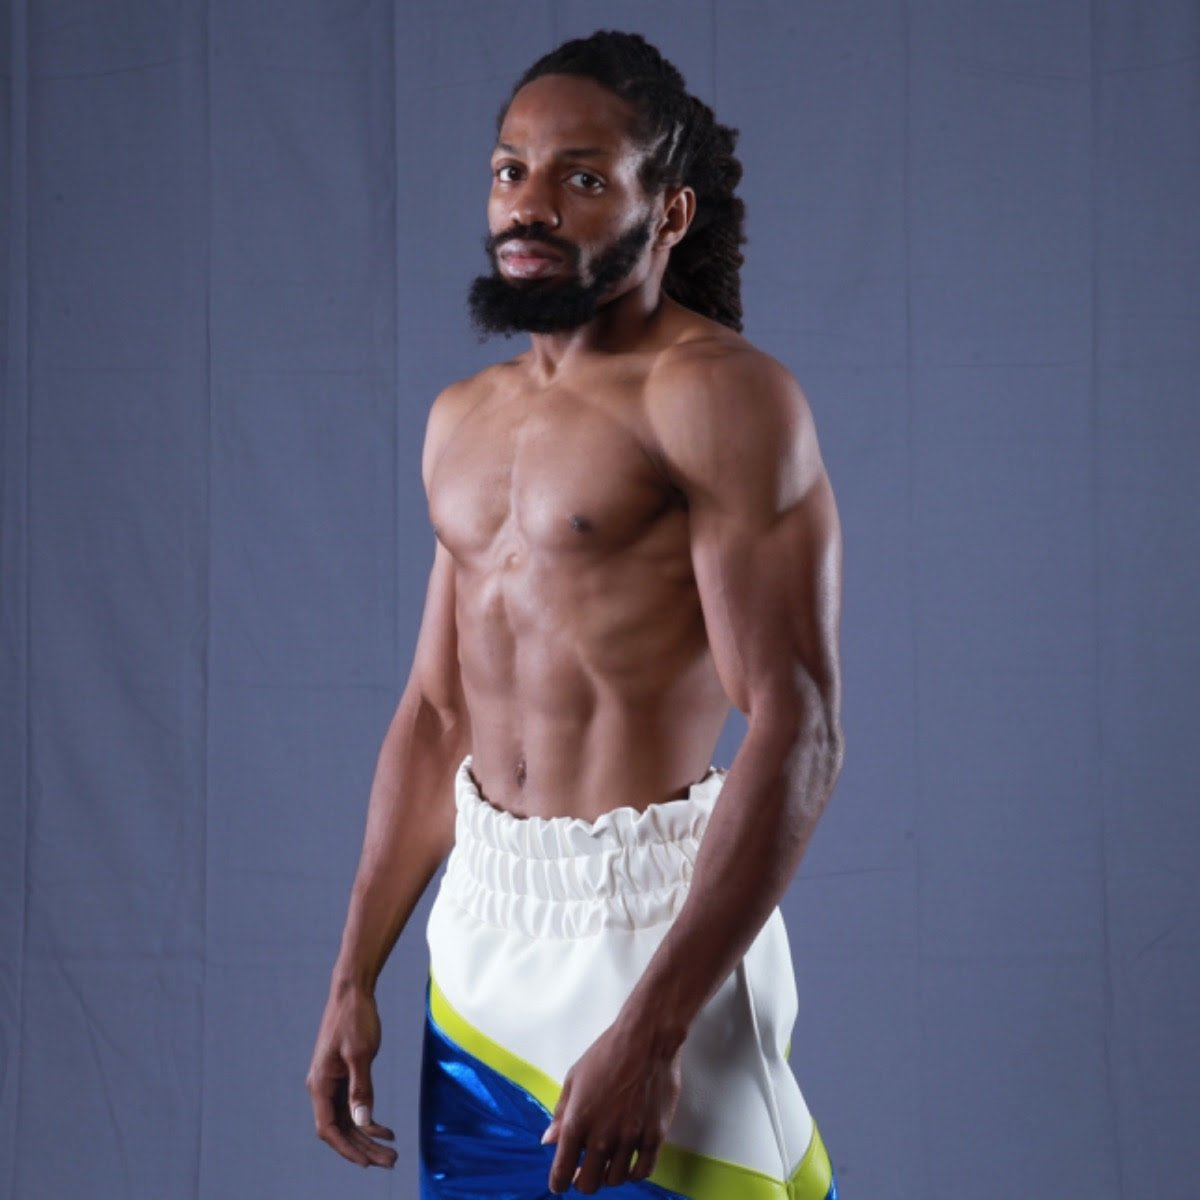 Omar Douglas - American Omar Douglas aims to rip up Lee Selby's big ring return and his designs of becoming Wales' first ever recognized two-time and two-weight world champion when they clash on Saturday 23rd February at The O2, promoted by Premier Boxing Champions (PBC) and Poxon Sports.